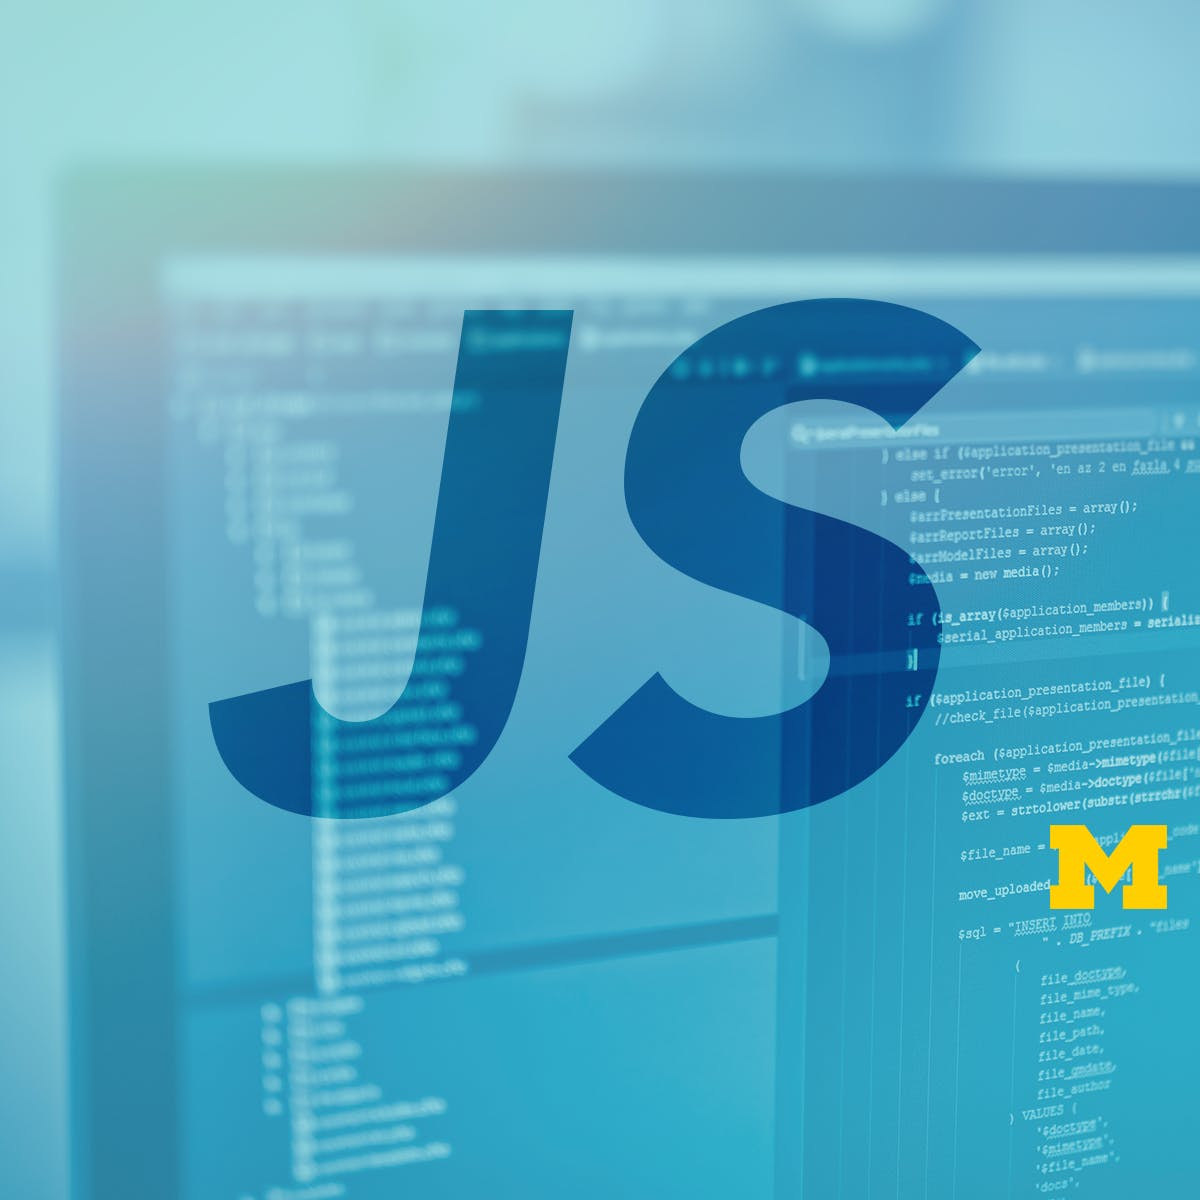 JavaScript, jQuery, and JSON